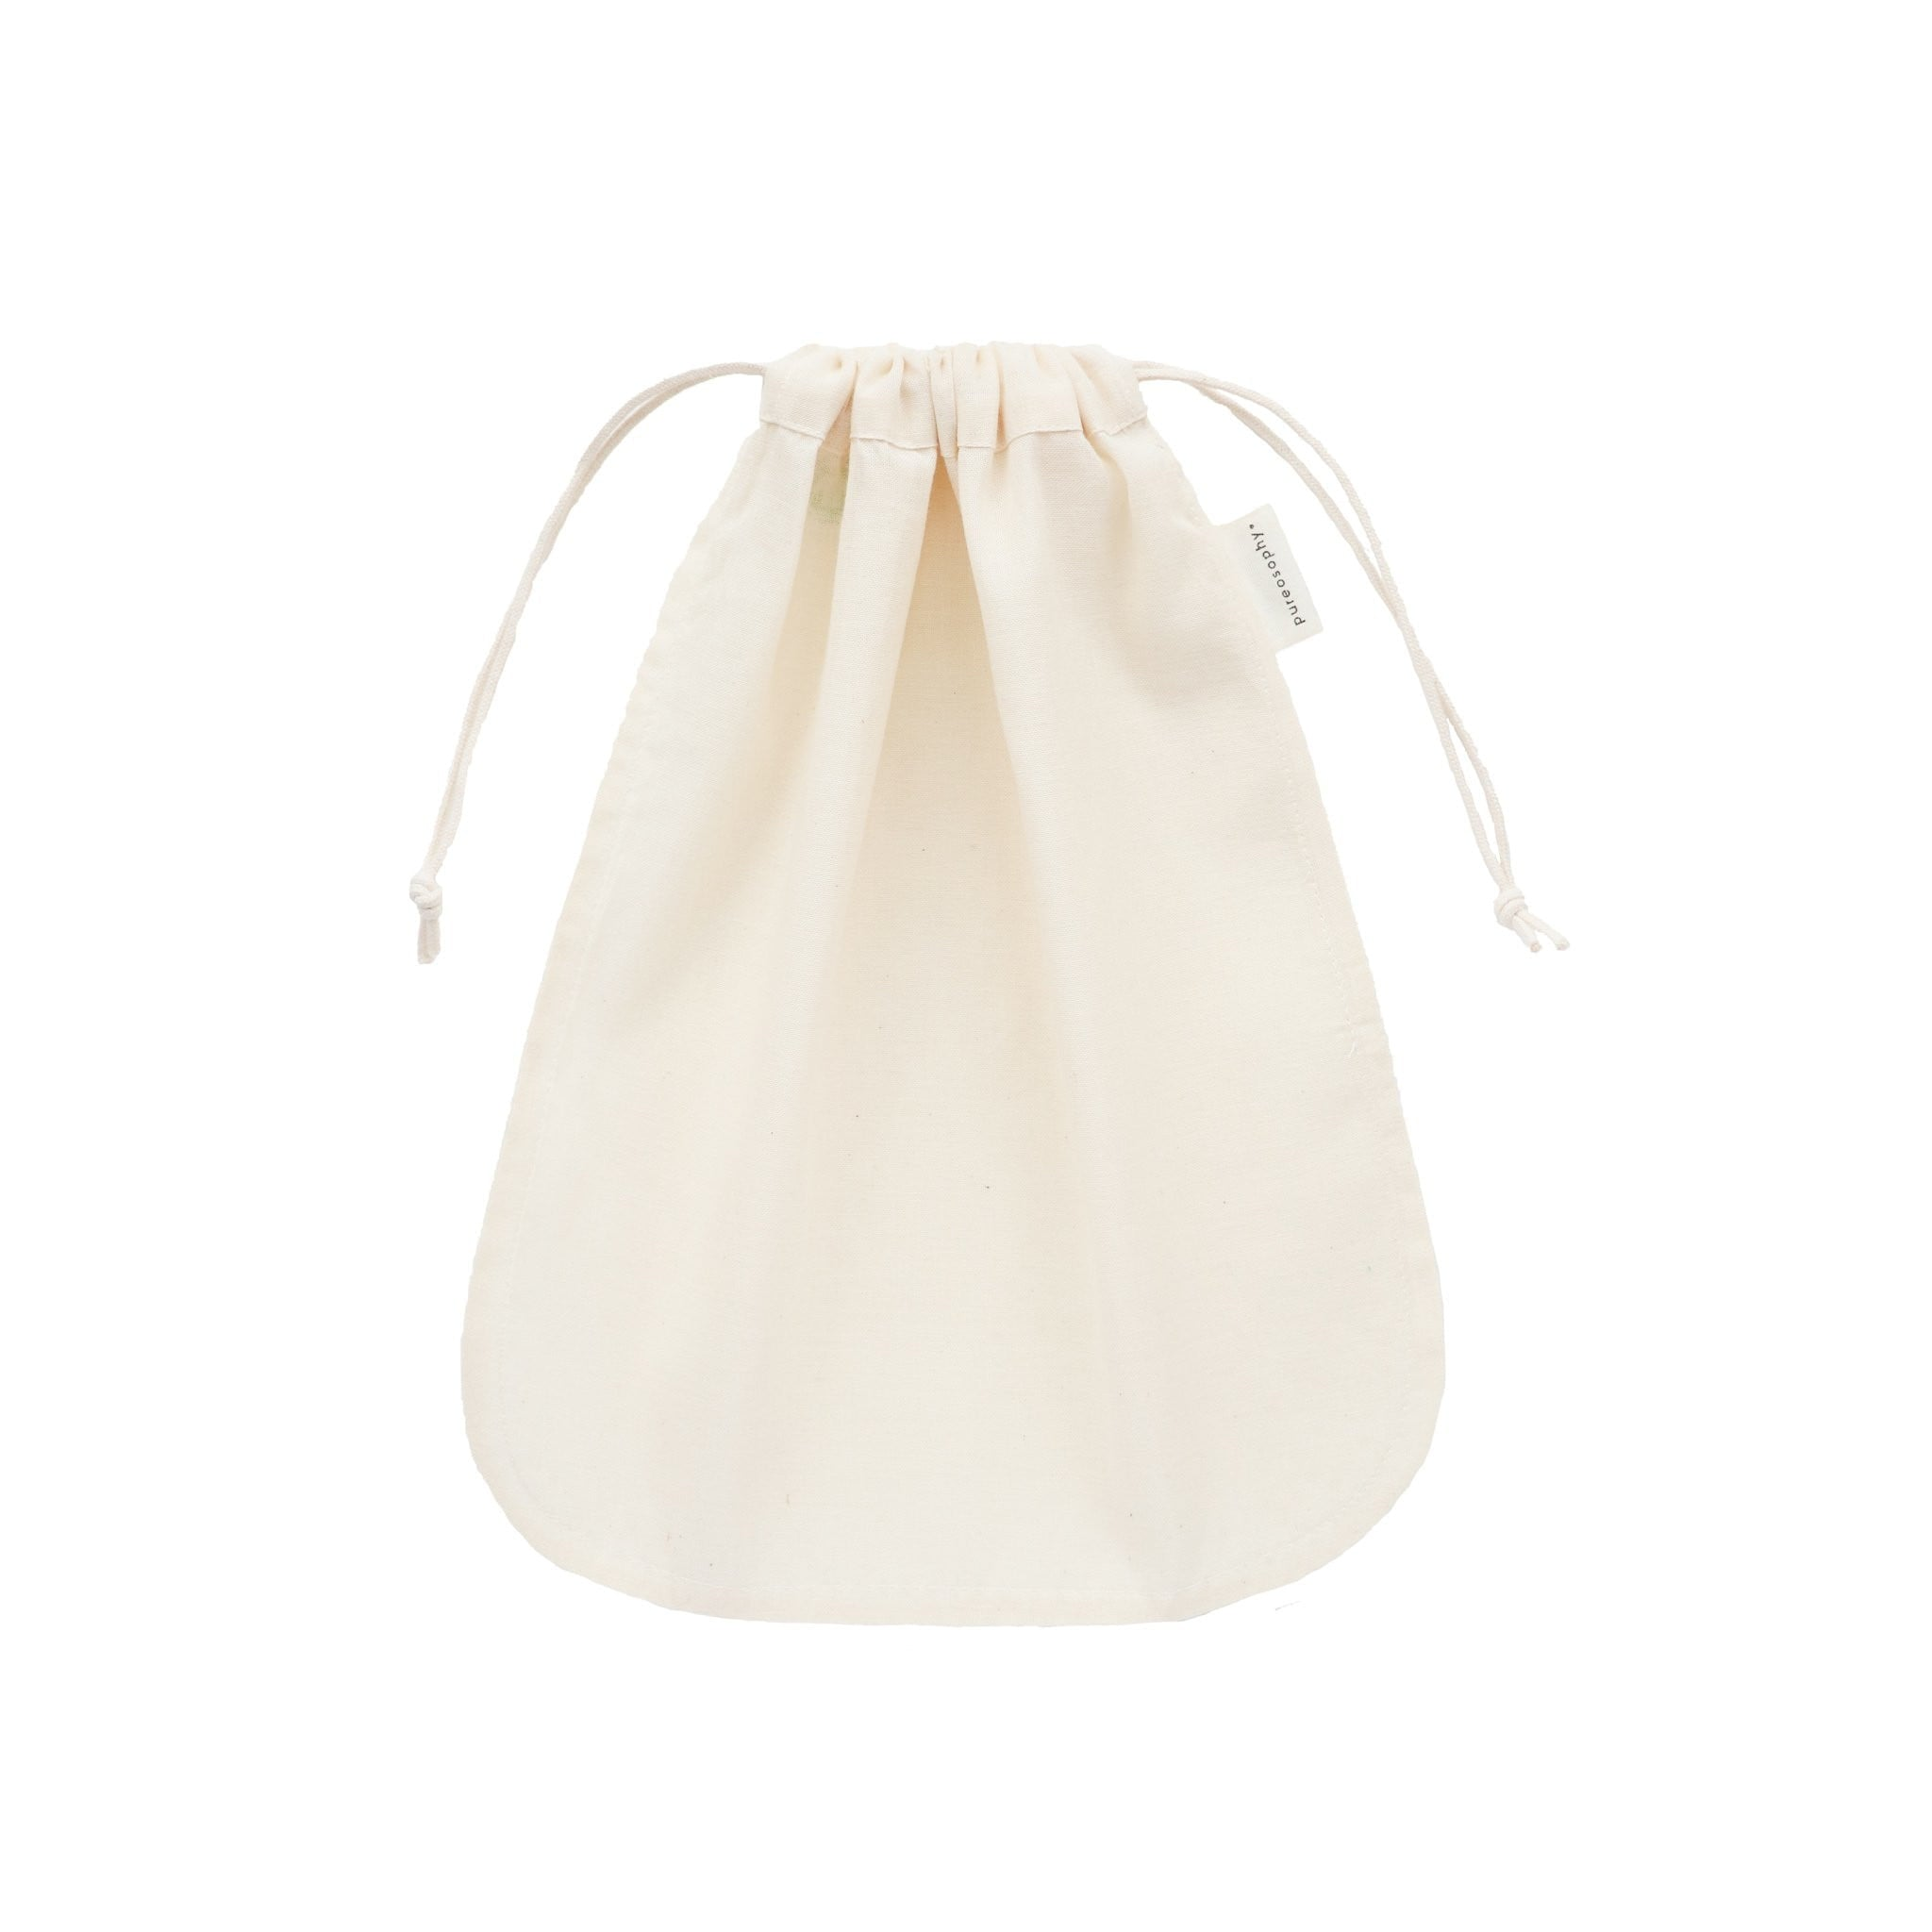 Organic cotton nut milk bag closed